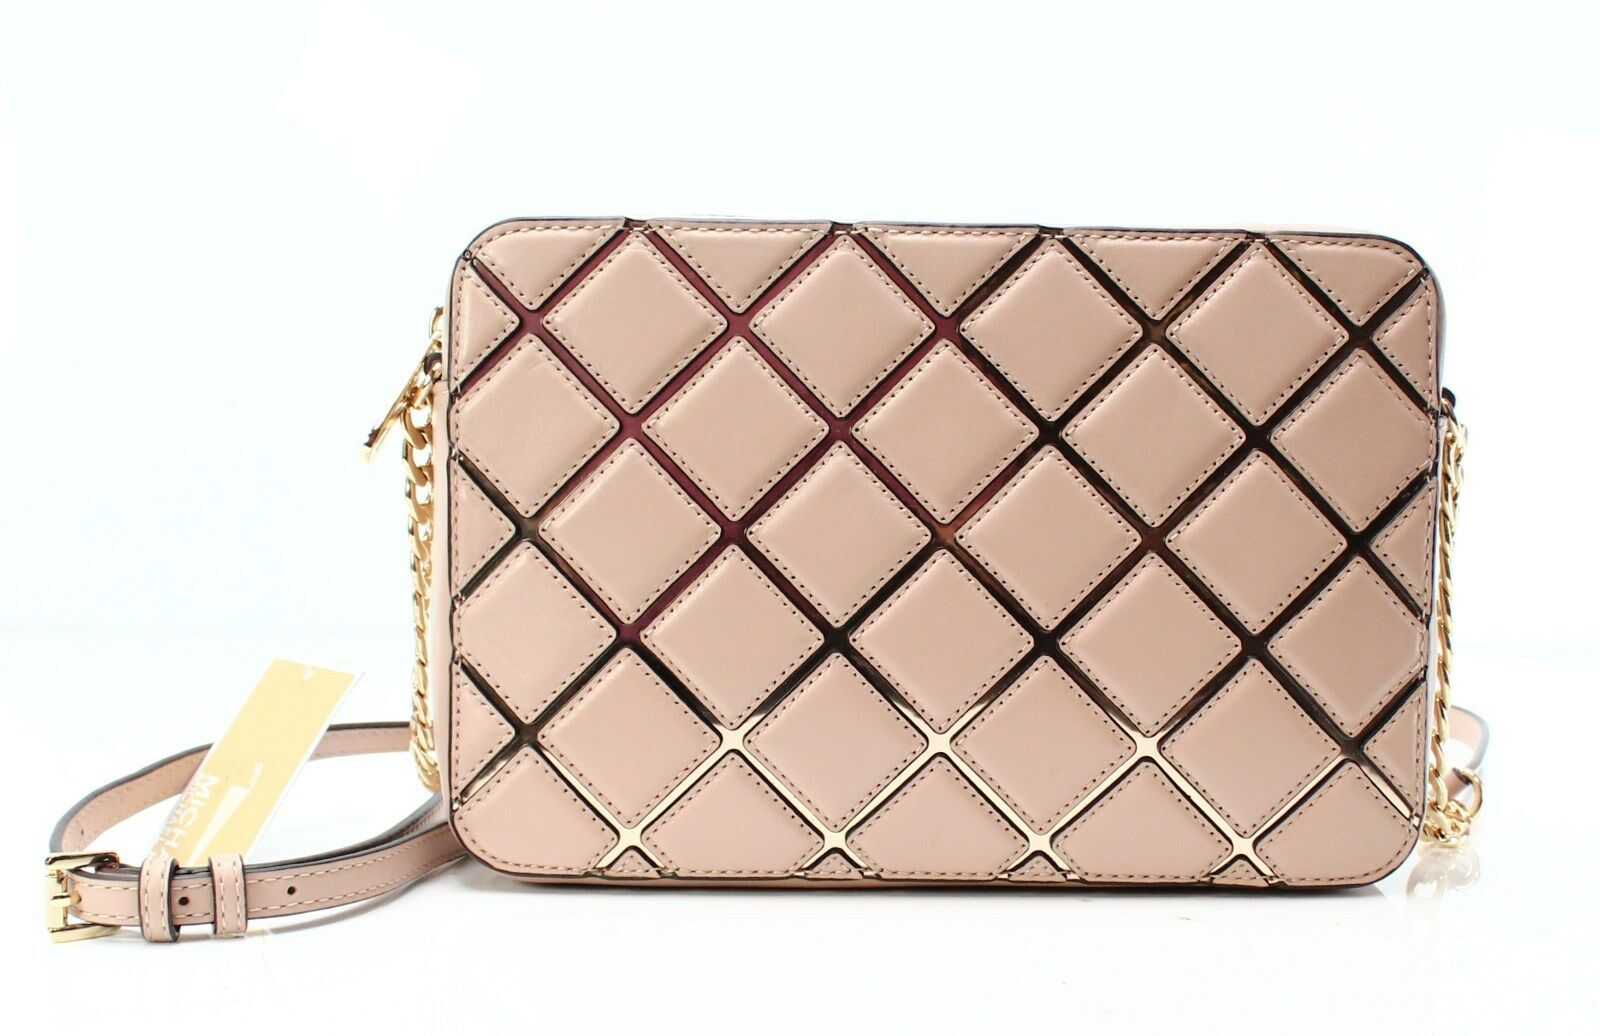 3c52cfc15fc5e Authentic Michael Kors Oyster JS Travel Large EW Diamond Quilted ...